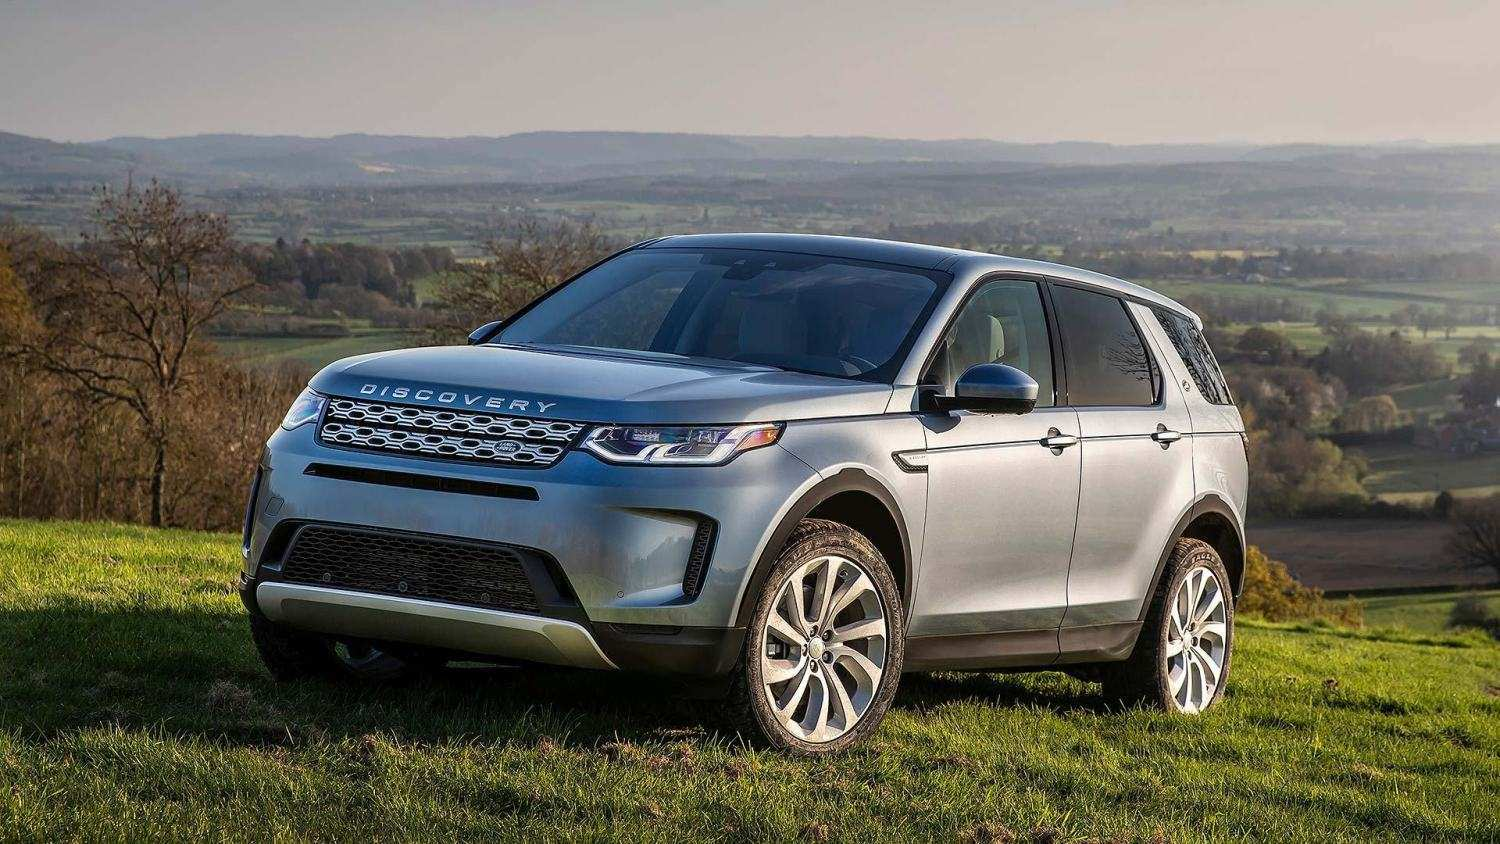 20 All New 2020 Land Rover Overview